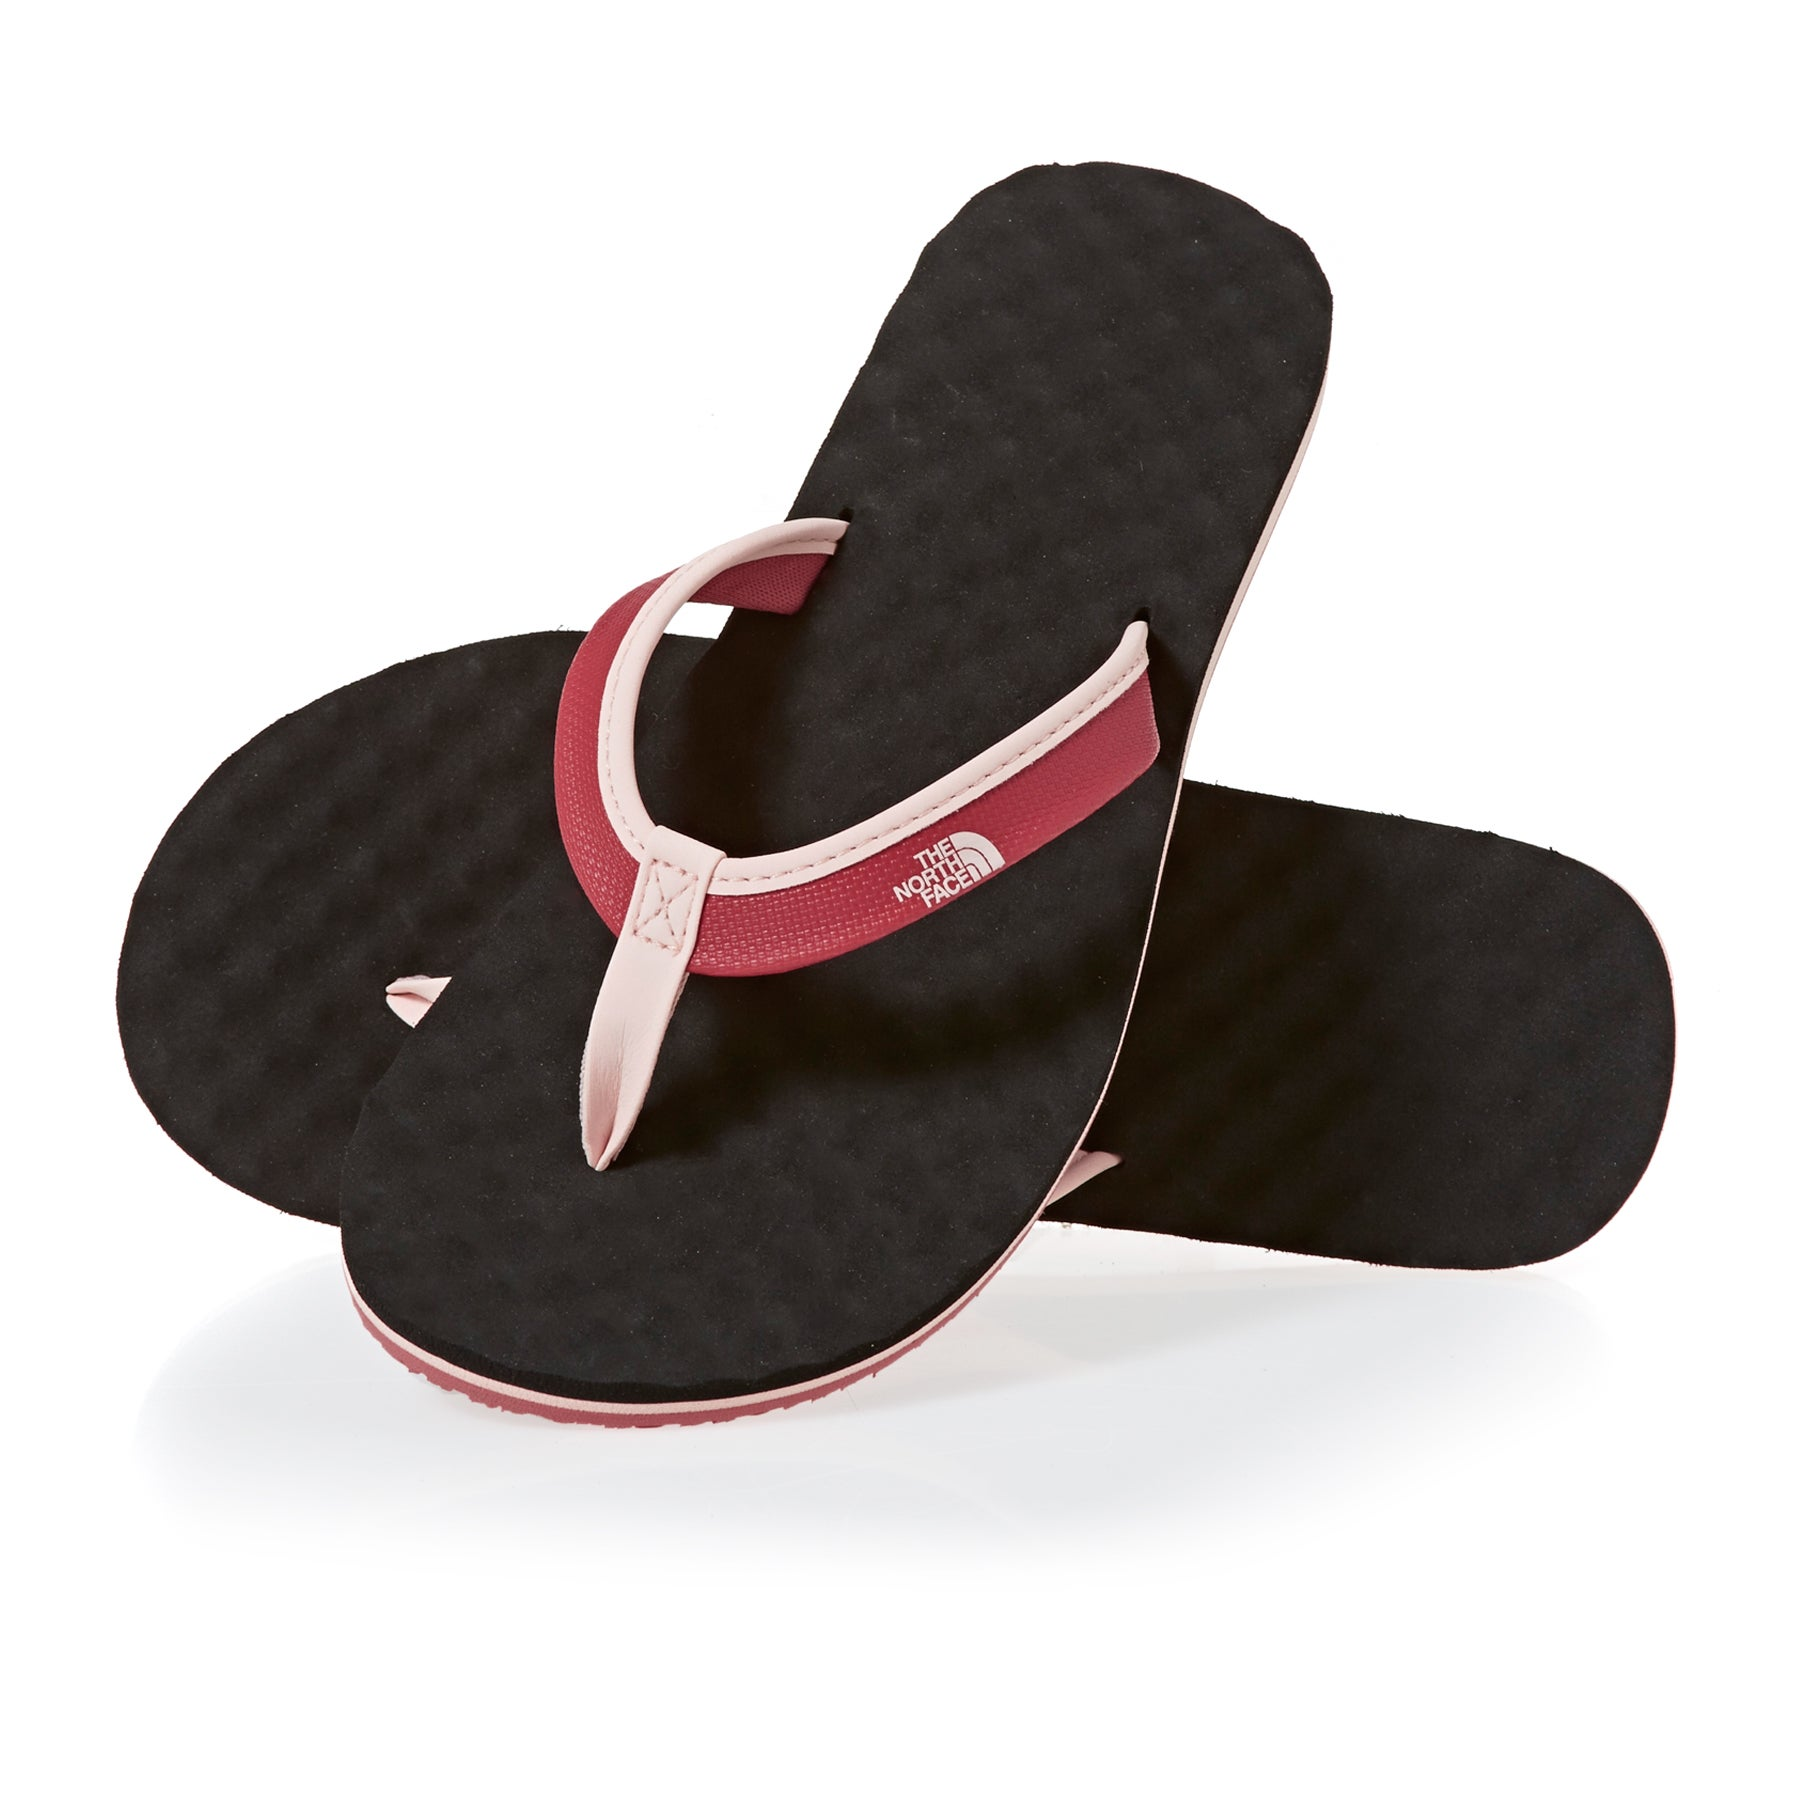 North Face Base Camp Mini Womens Sandals - Sunbaked Red Evening Sand Pink